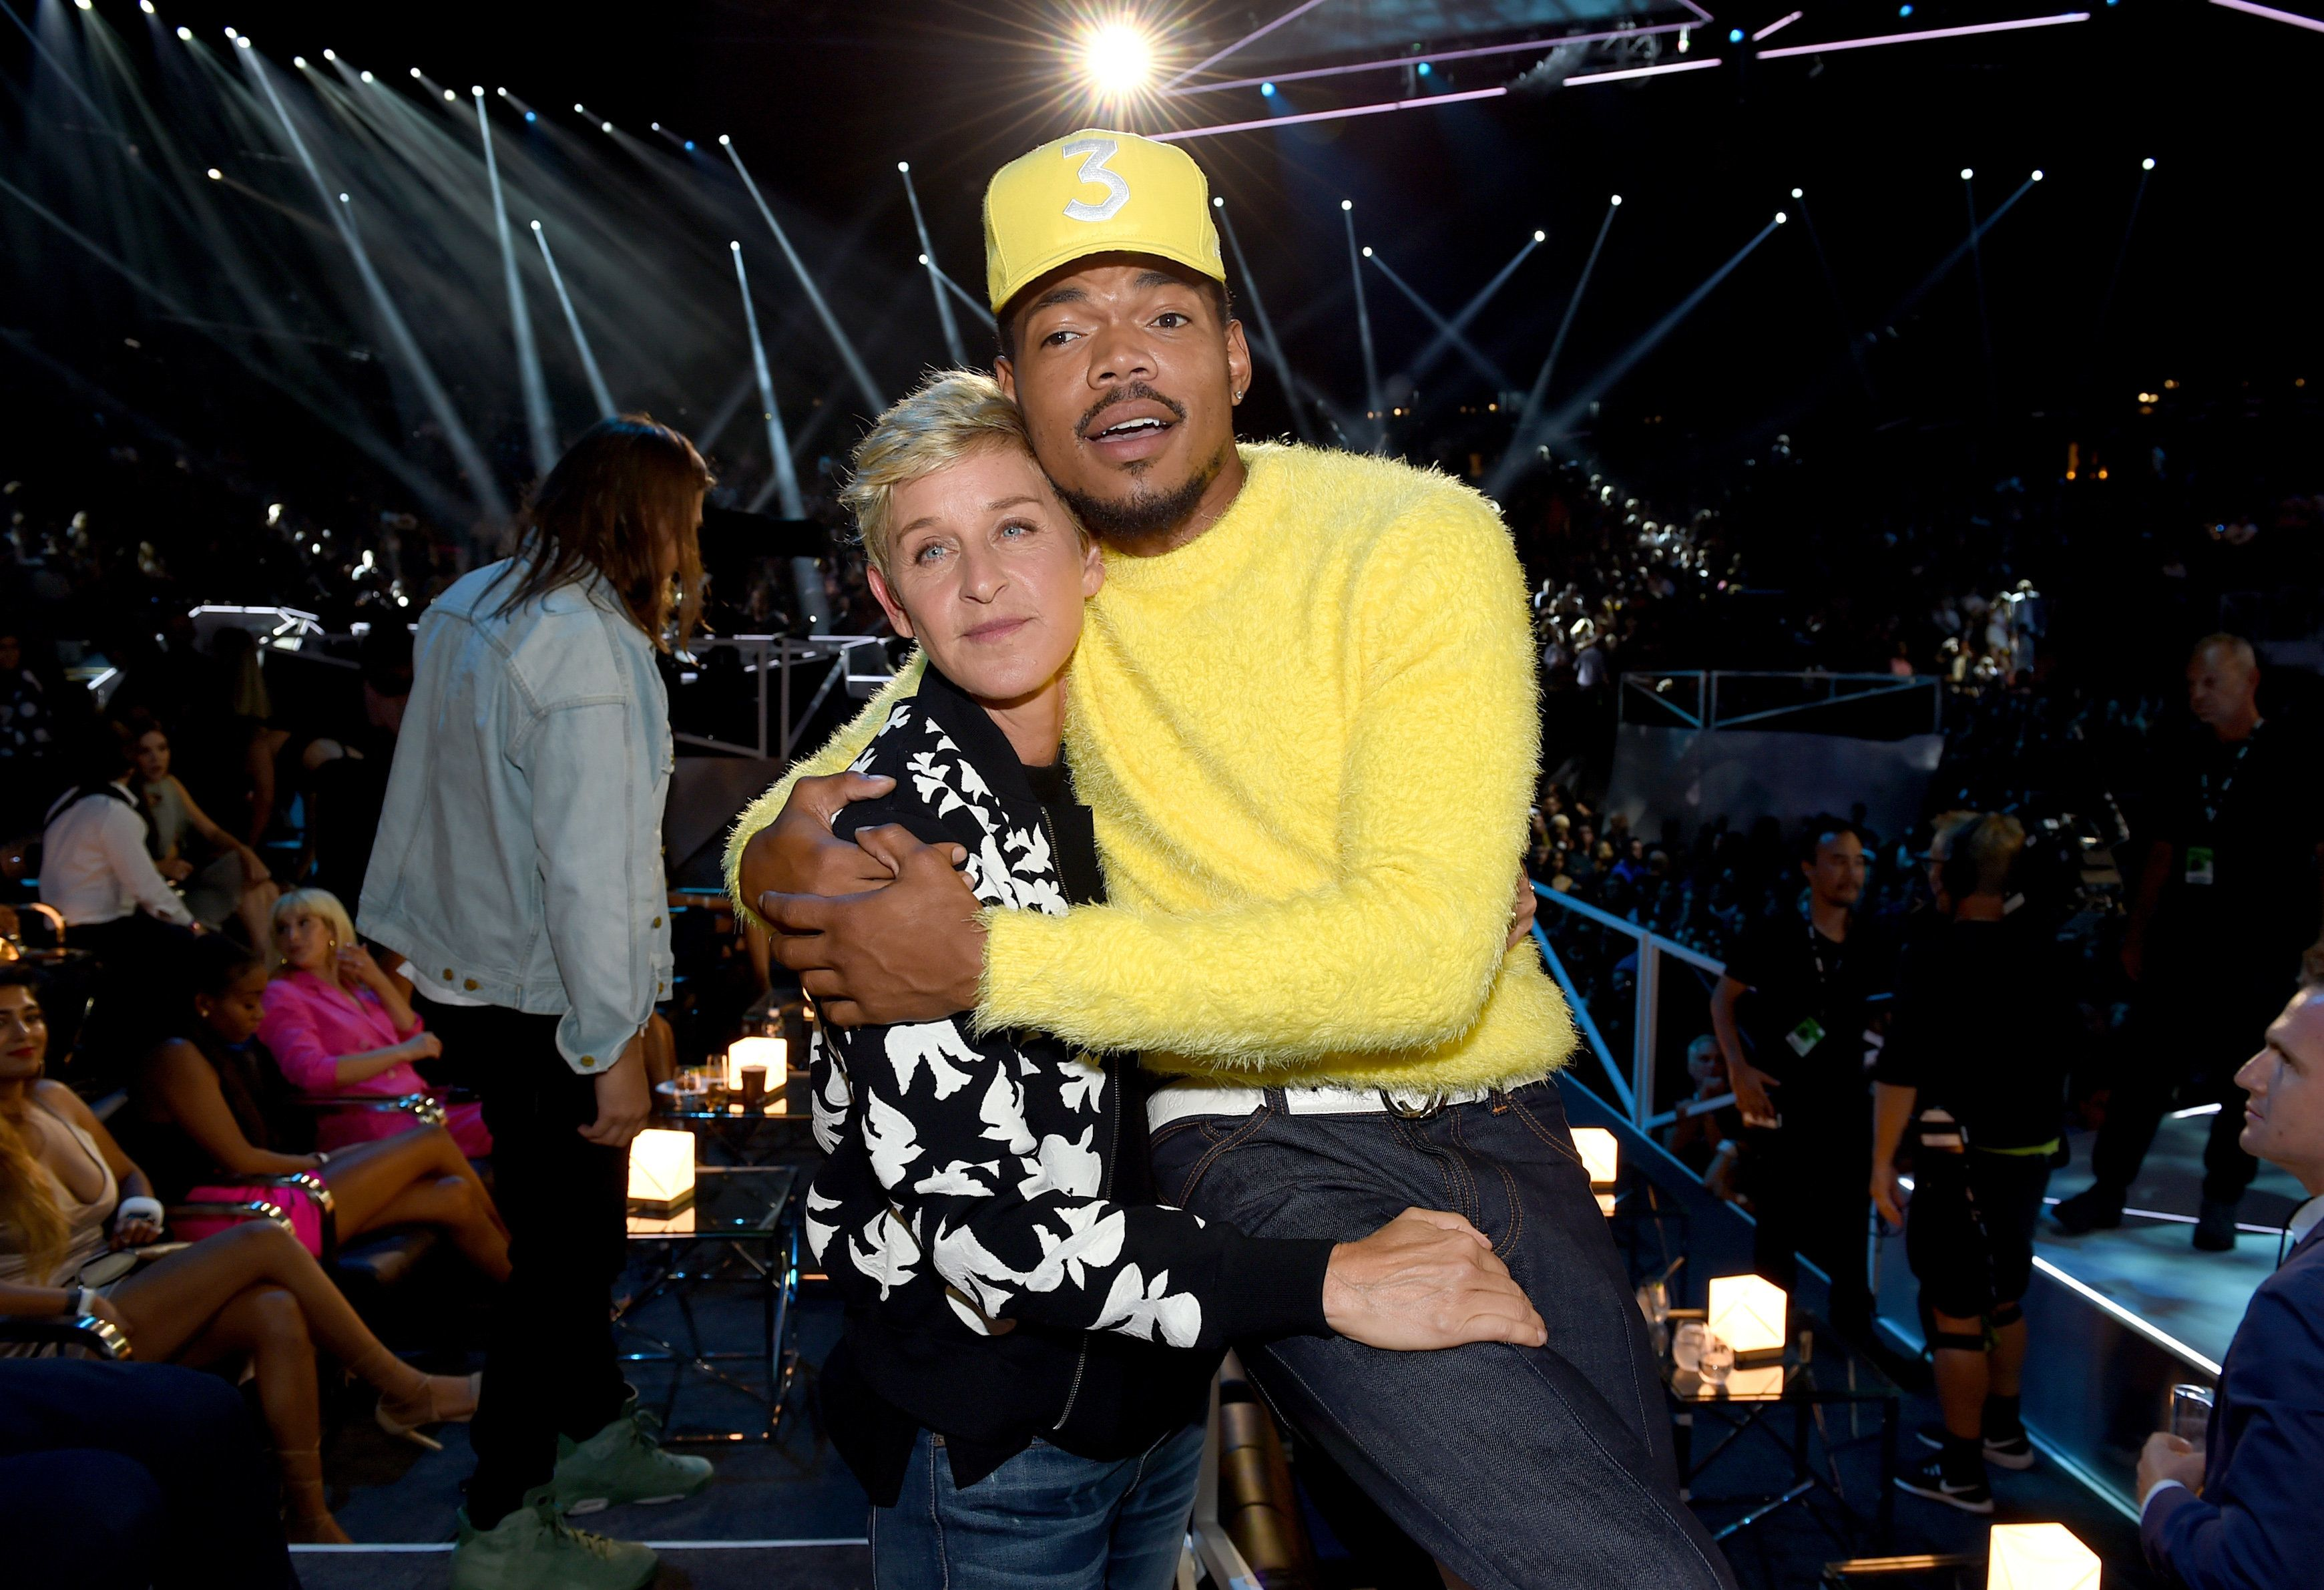 INGLEWOOD, CA - AUGUST 27:  Ellen DeGeneres (L) and Chance The Rapper pose during the 2017 MTV Video Music Awards at The Forum on August 27, 2017 in Inglewood, California.  (Photo by John Shearer/Getty Images for MTV)